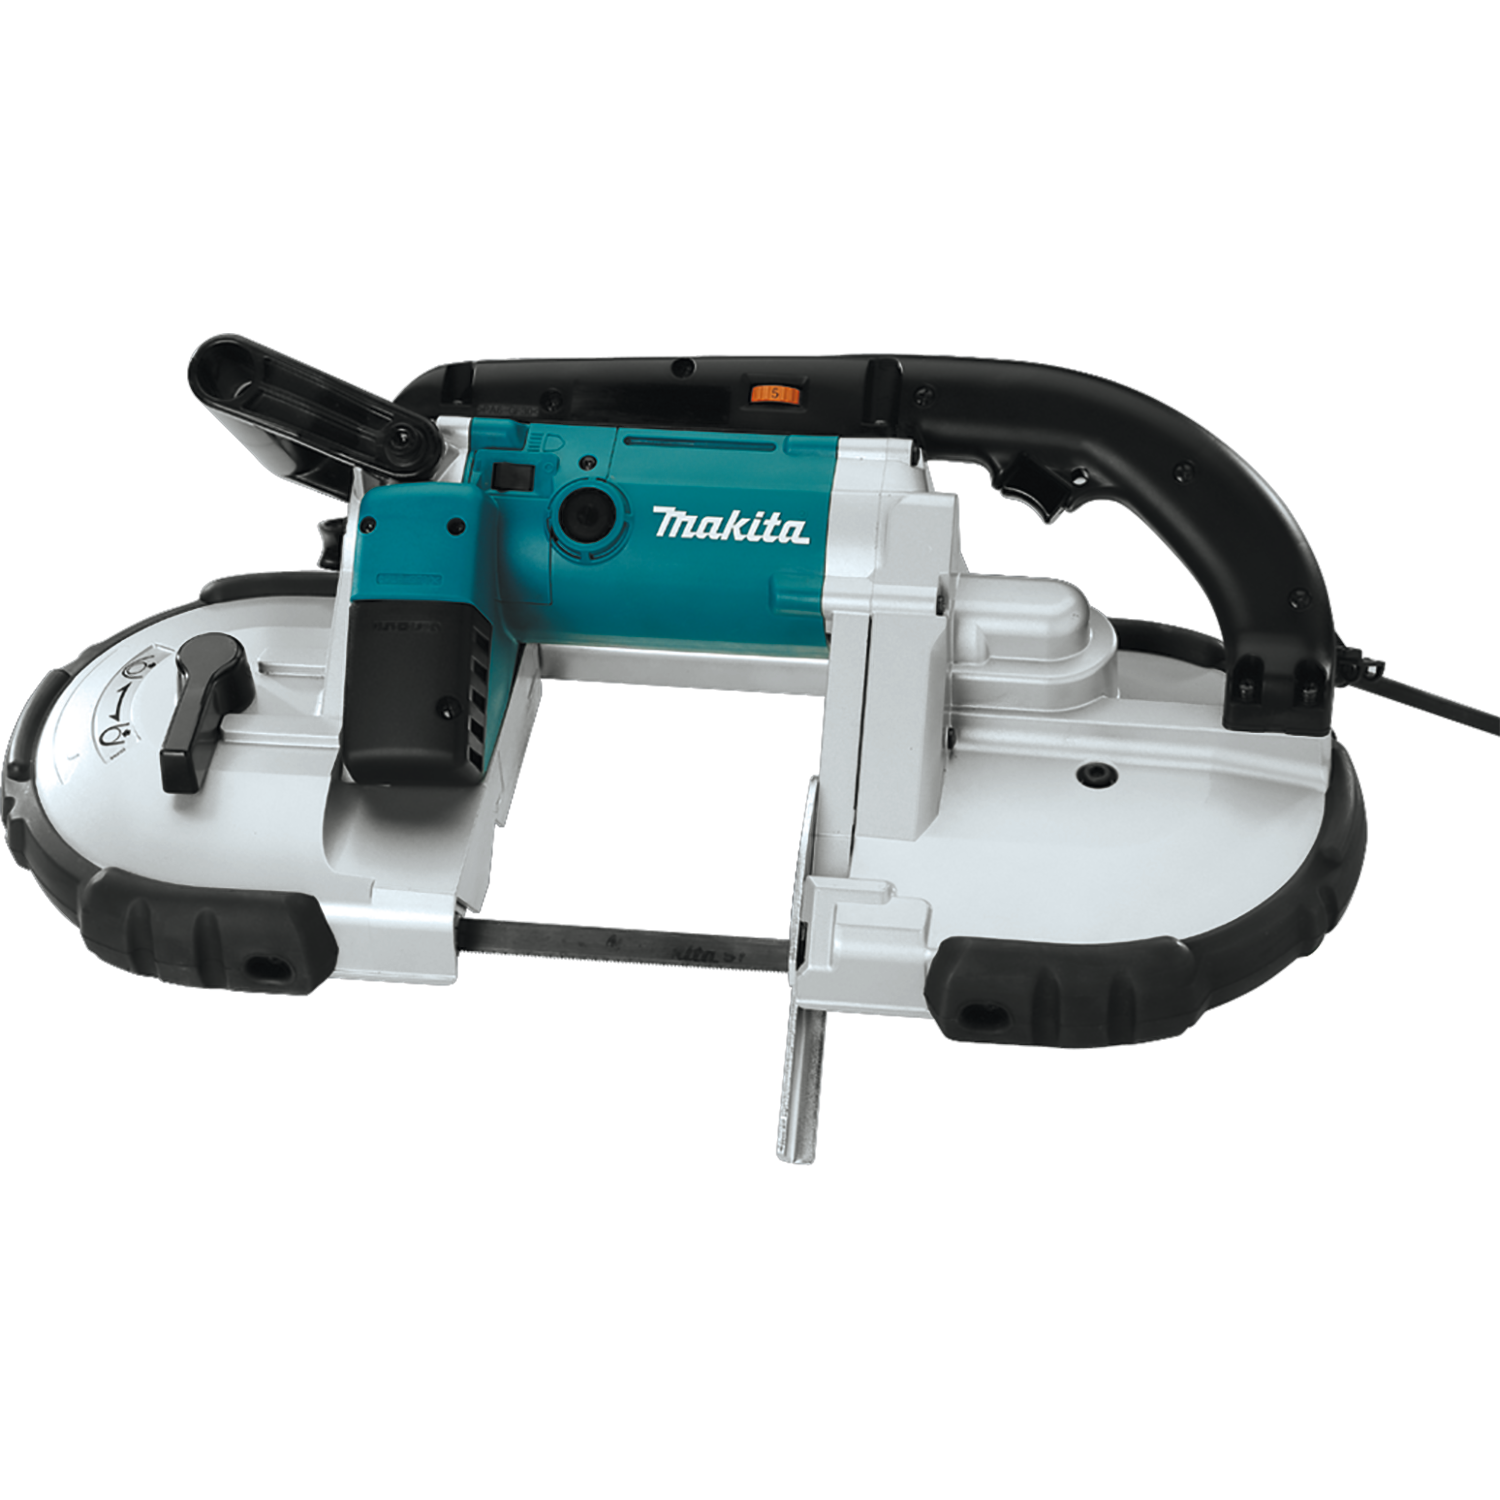 Makita usa product details 2107fz 2107fz greentooth Image collections